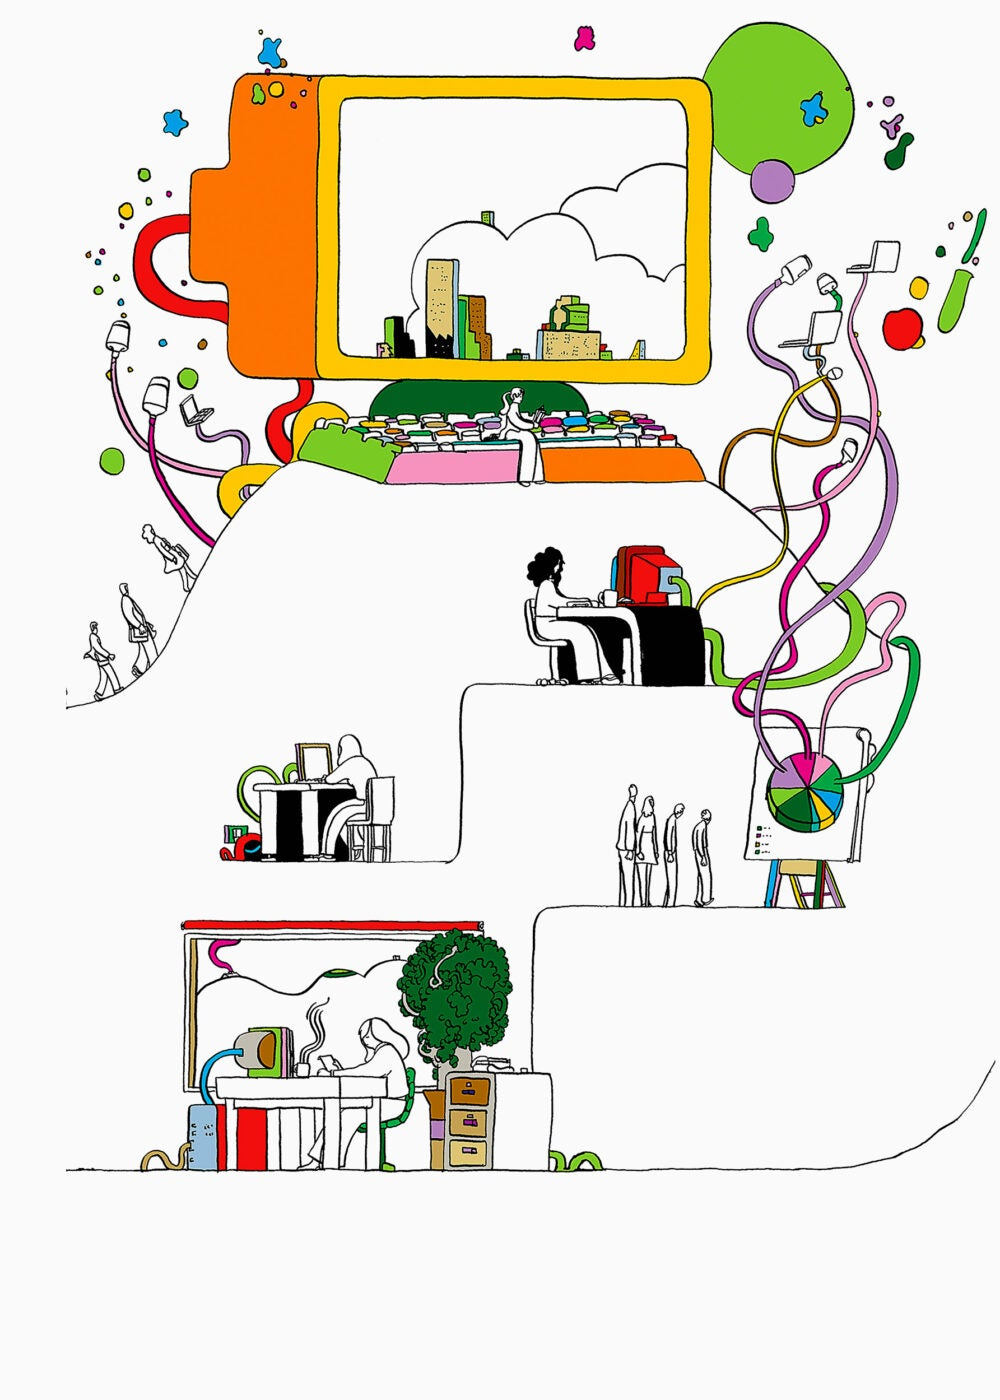 Illustration of students connecting virtually to larger network.